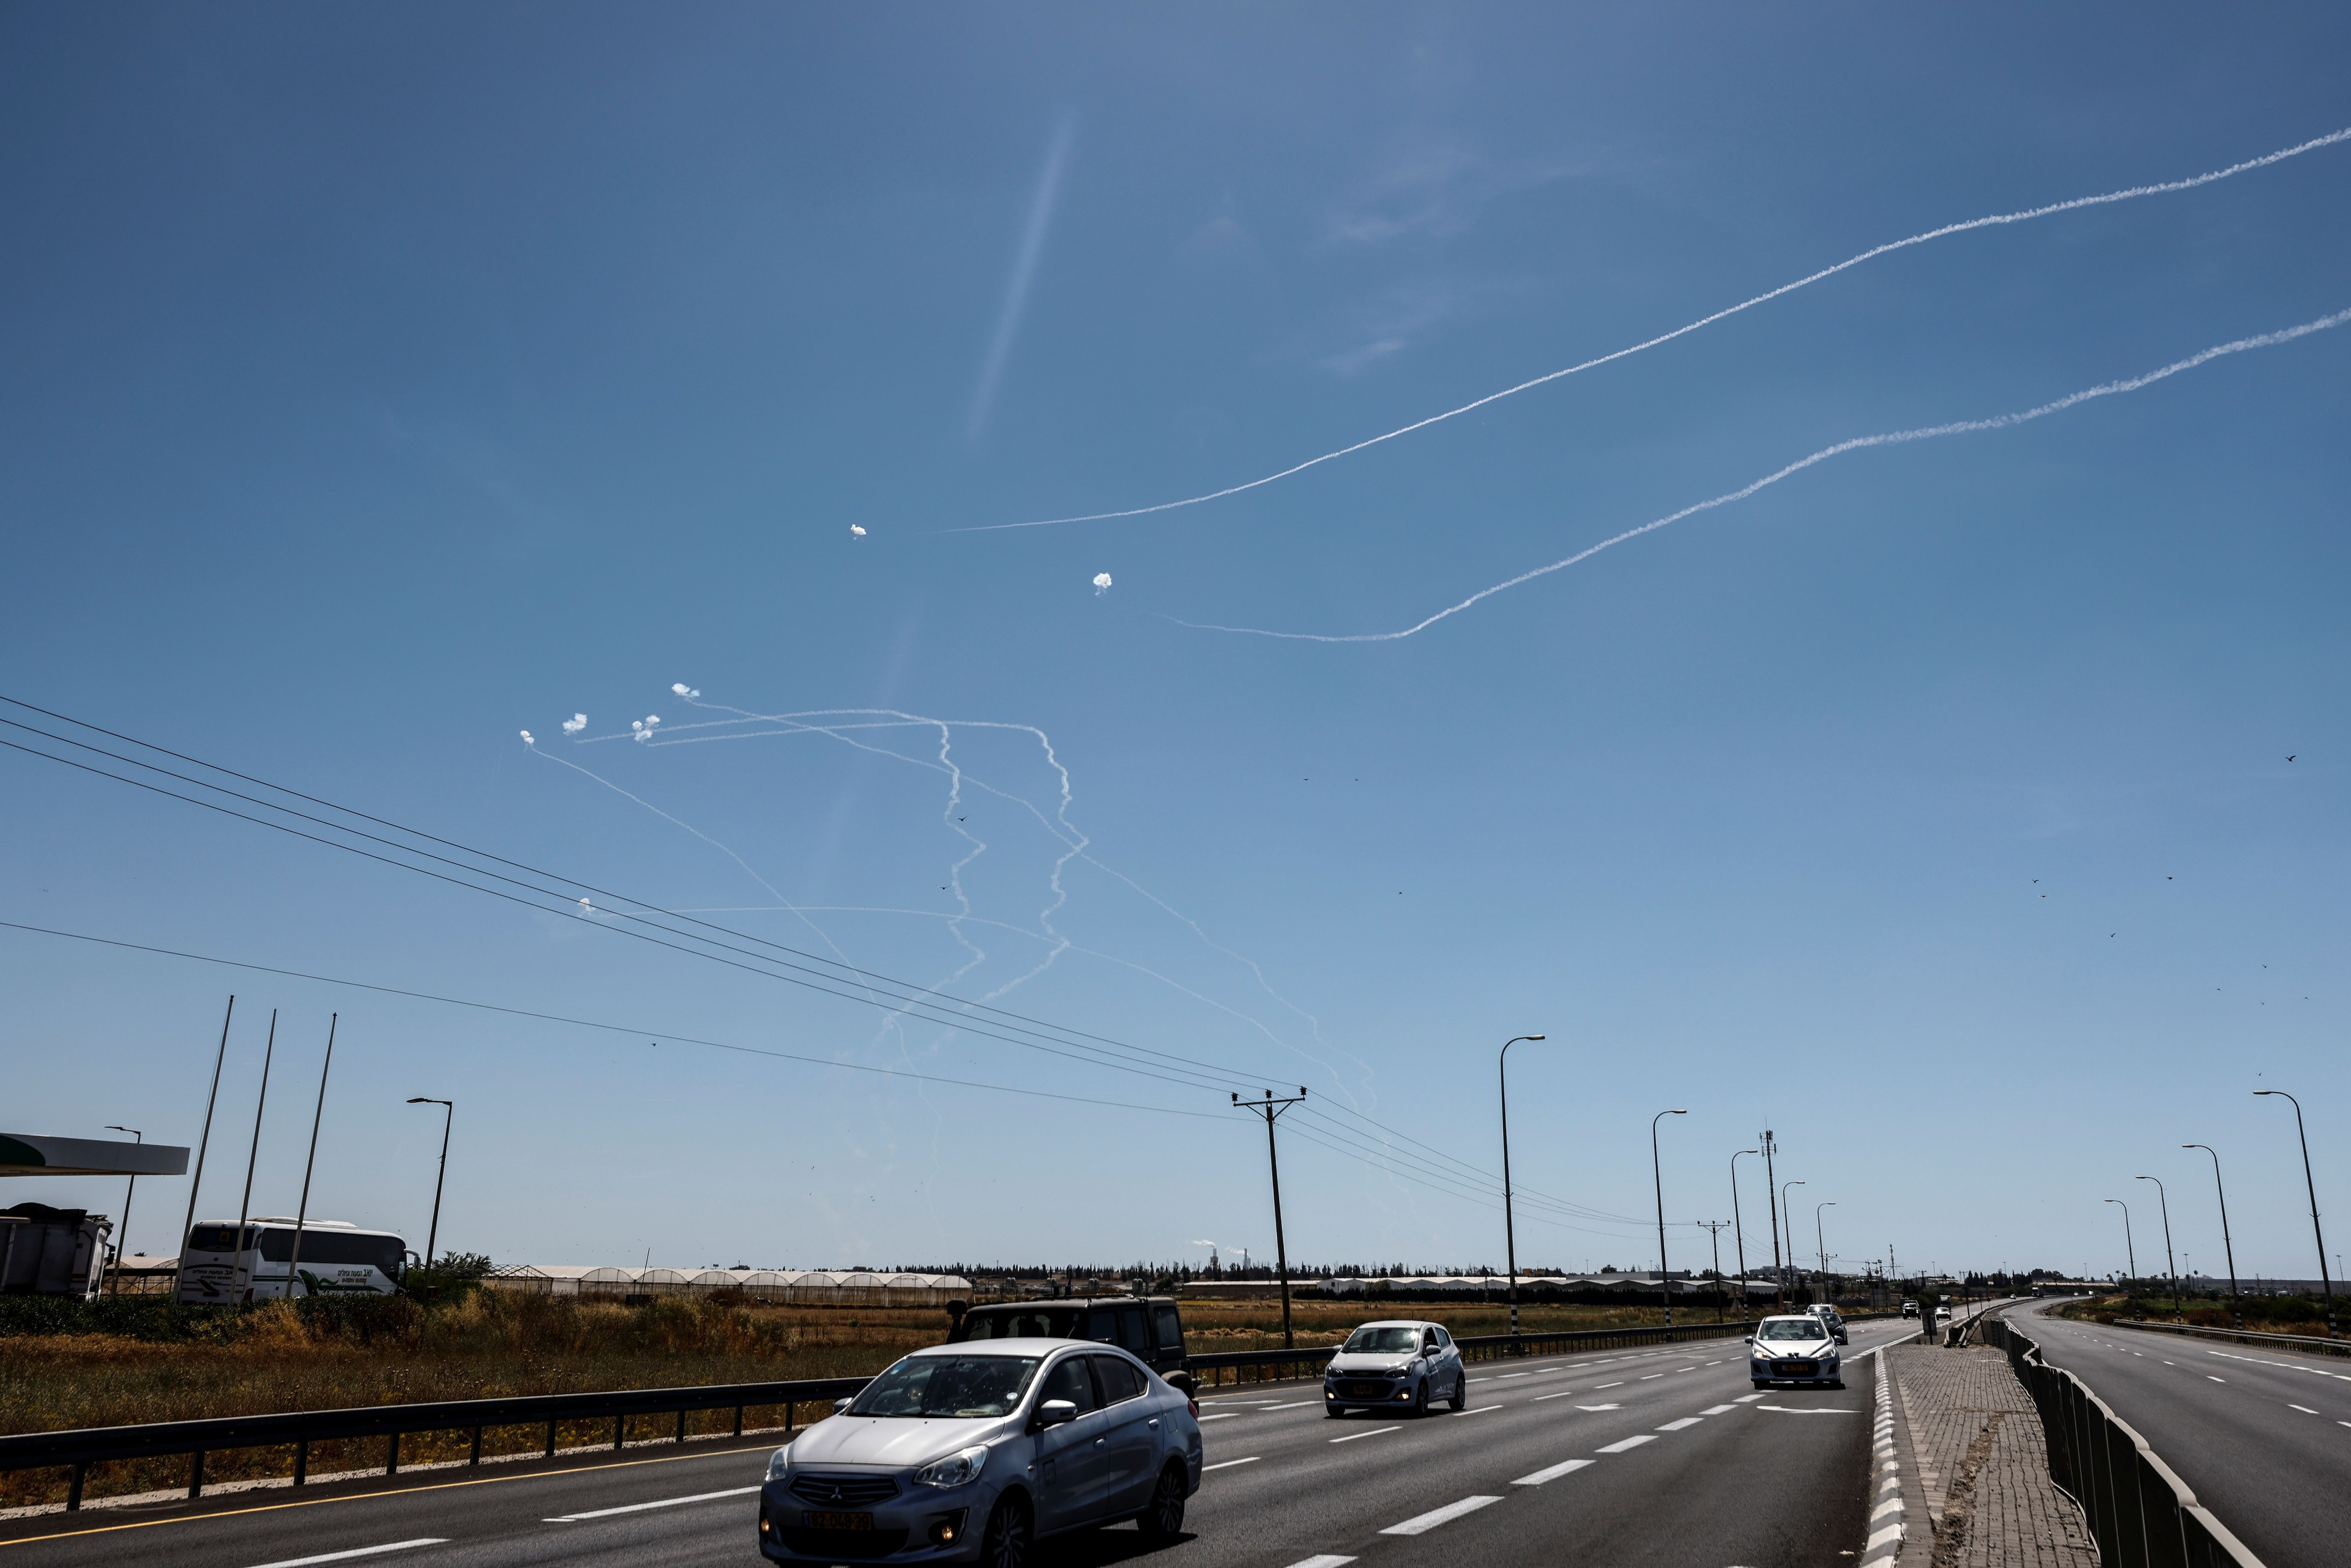 Cars drive on a main road as Israel's Iron Dome anti-missile system intercept rockets launched from the Gaza Strip towards Israel, near Ashkelon, Israel May 18, 2021. REUTERS/Amir Cohen